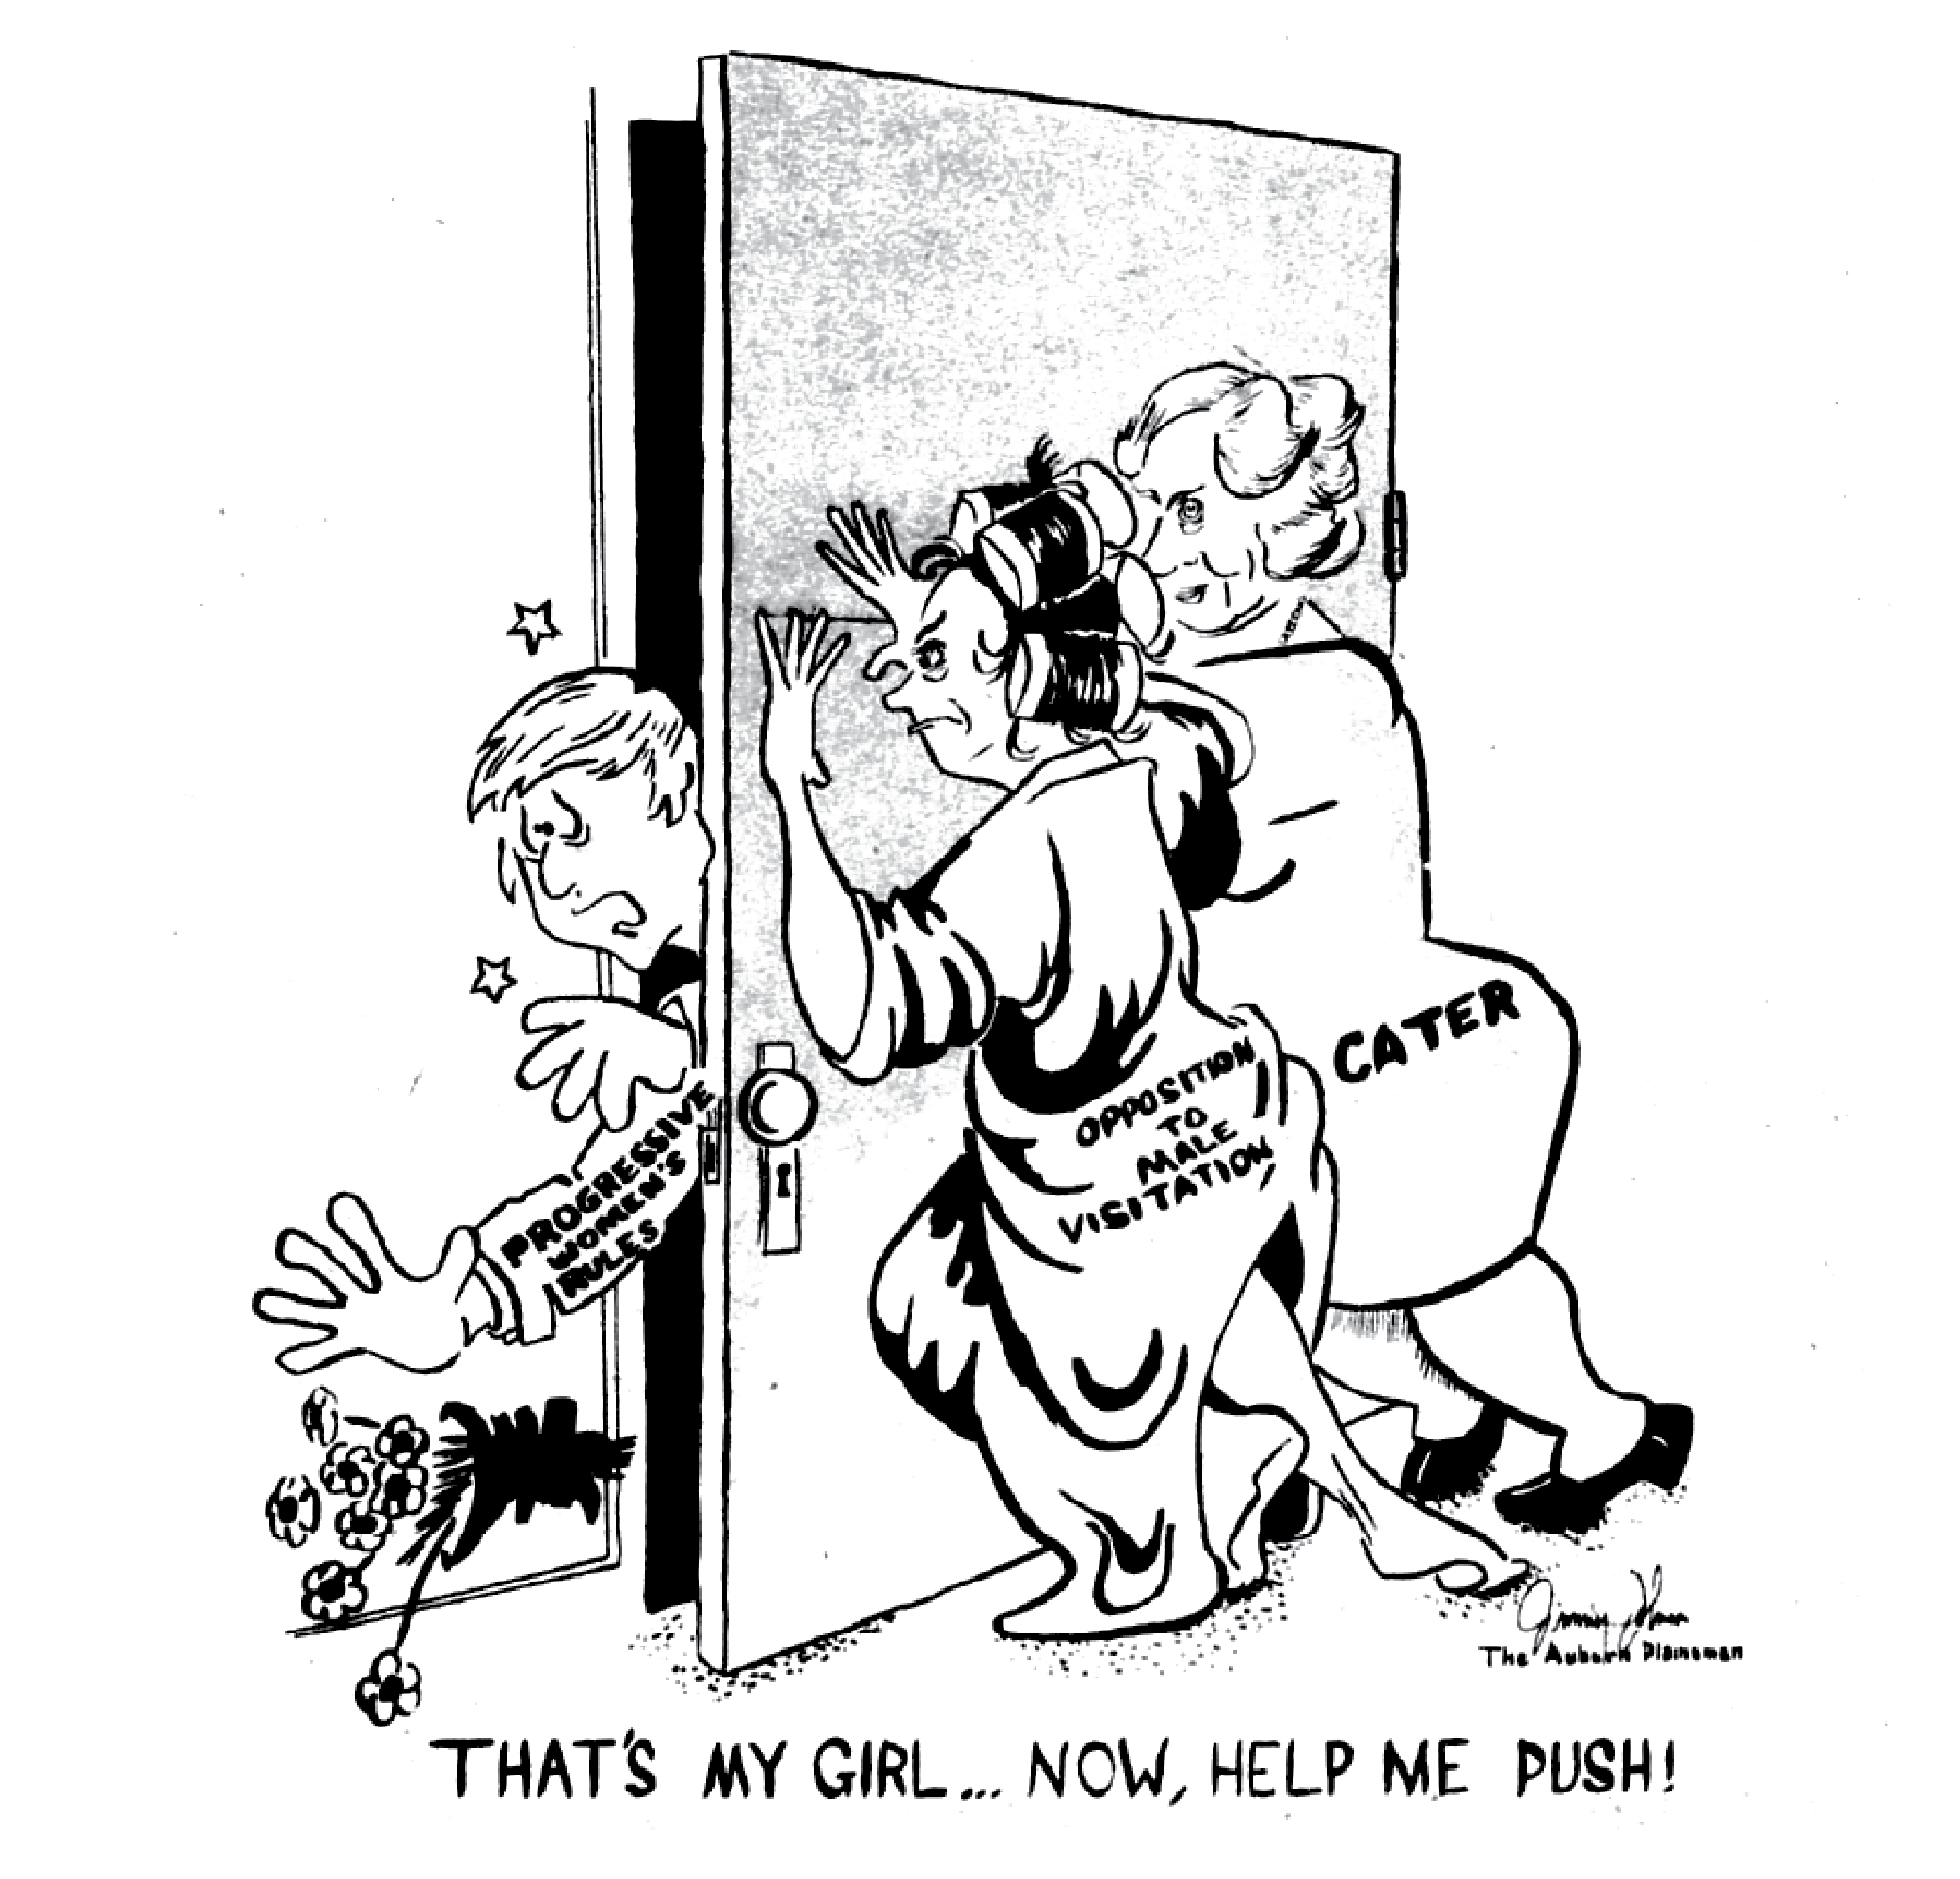 Dean Cater and Opposition to Male Visitation push a door closed on Progressive Women's rules.